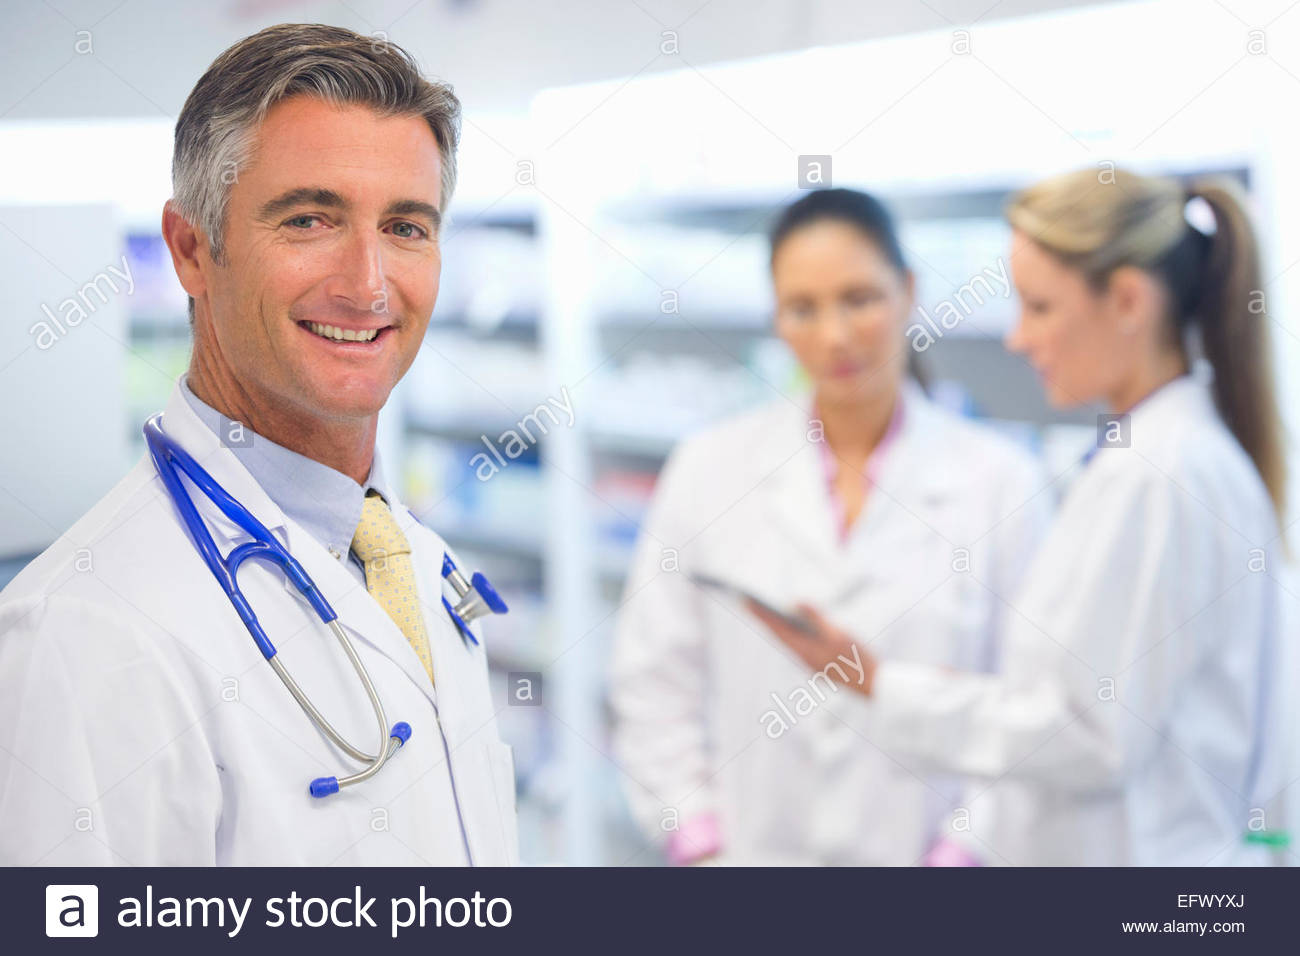 Doctor, wearing stethoscope, smiling at camera, with colleagues in background - Stock Image